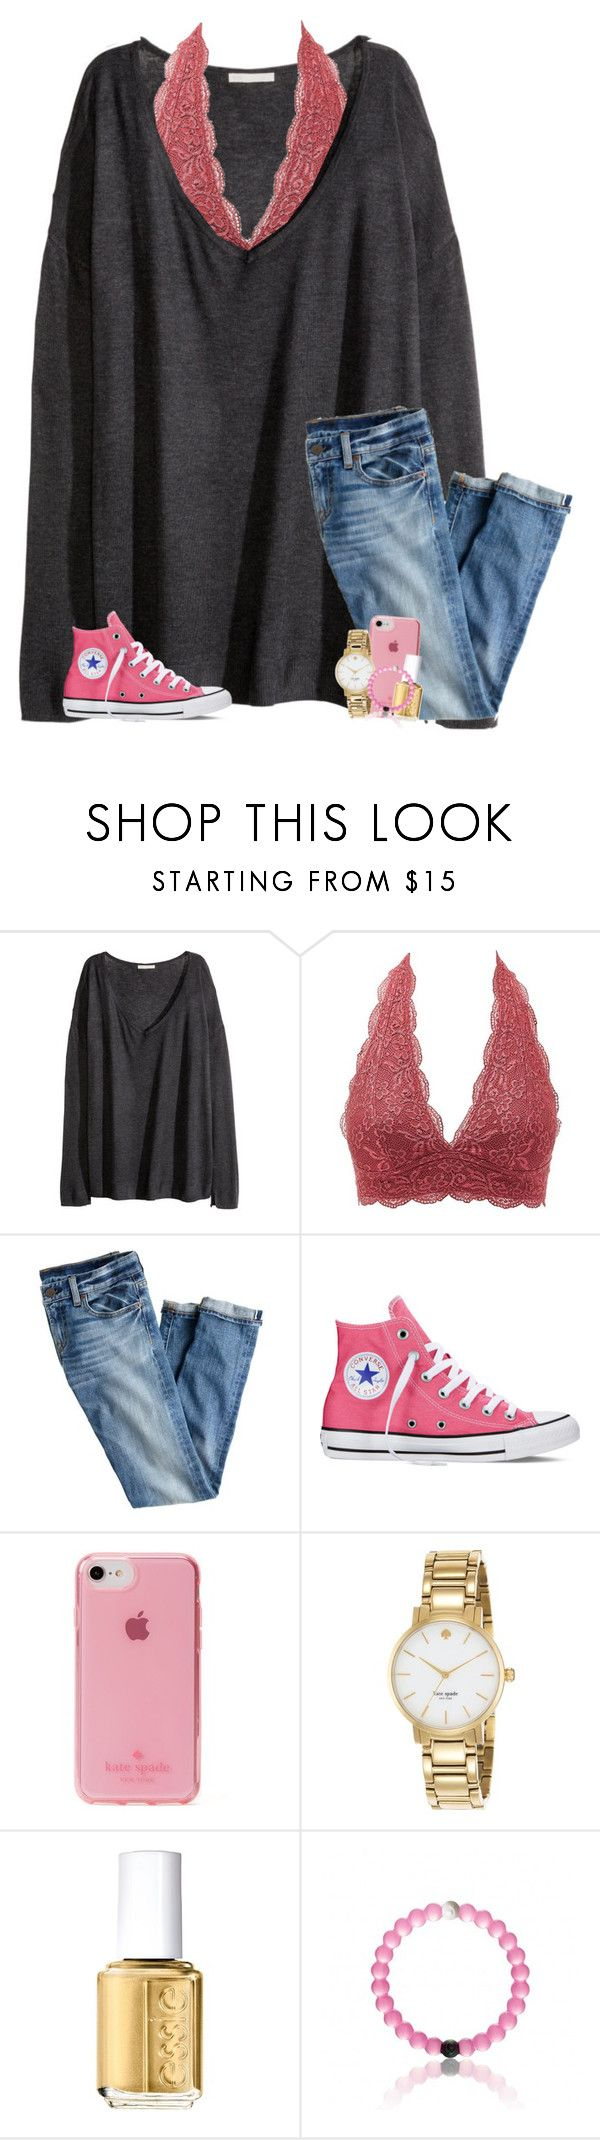 """""""black panther was rlly good tbh"""" by kendallthackston ❤ liked on Polyvore featuring H&M, Charlotte Russe, J.Crew, Converse, Kate Spade and Essie"""